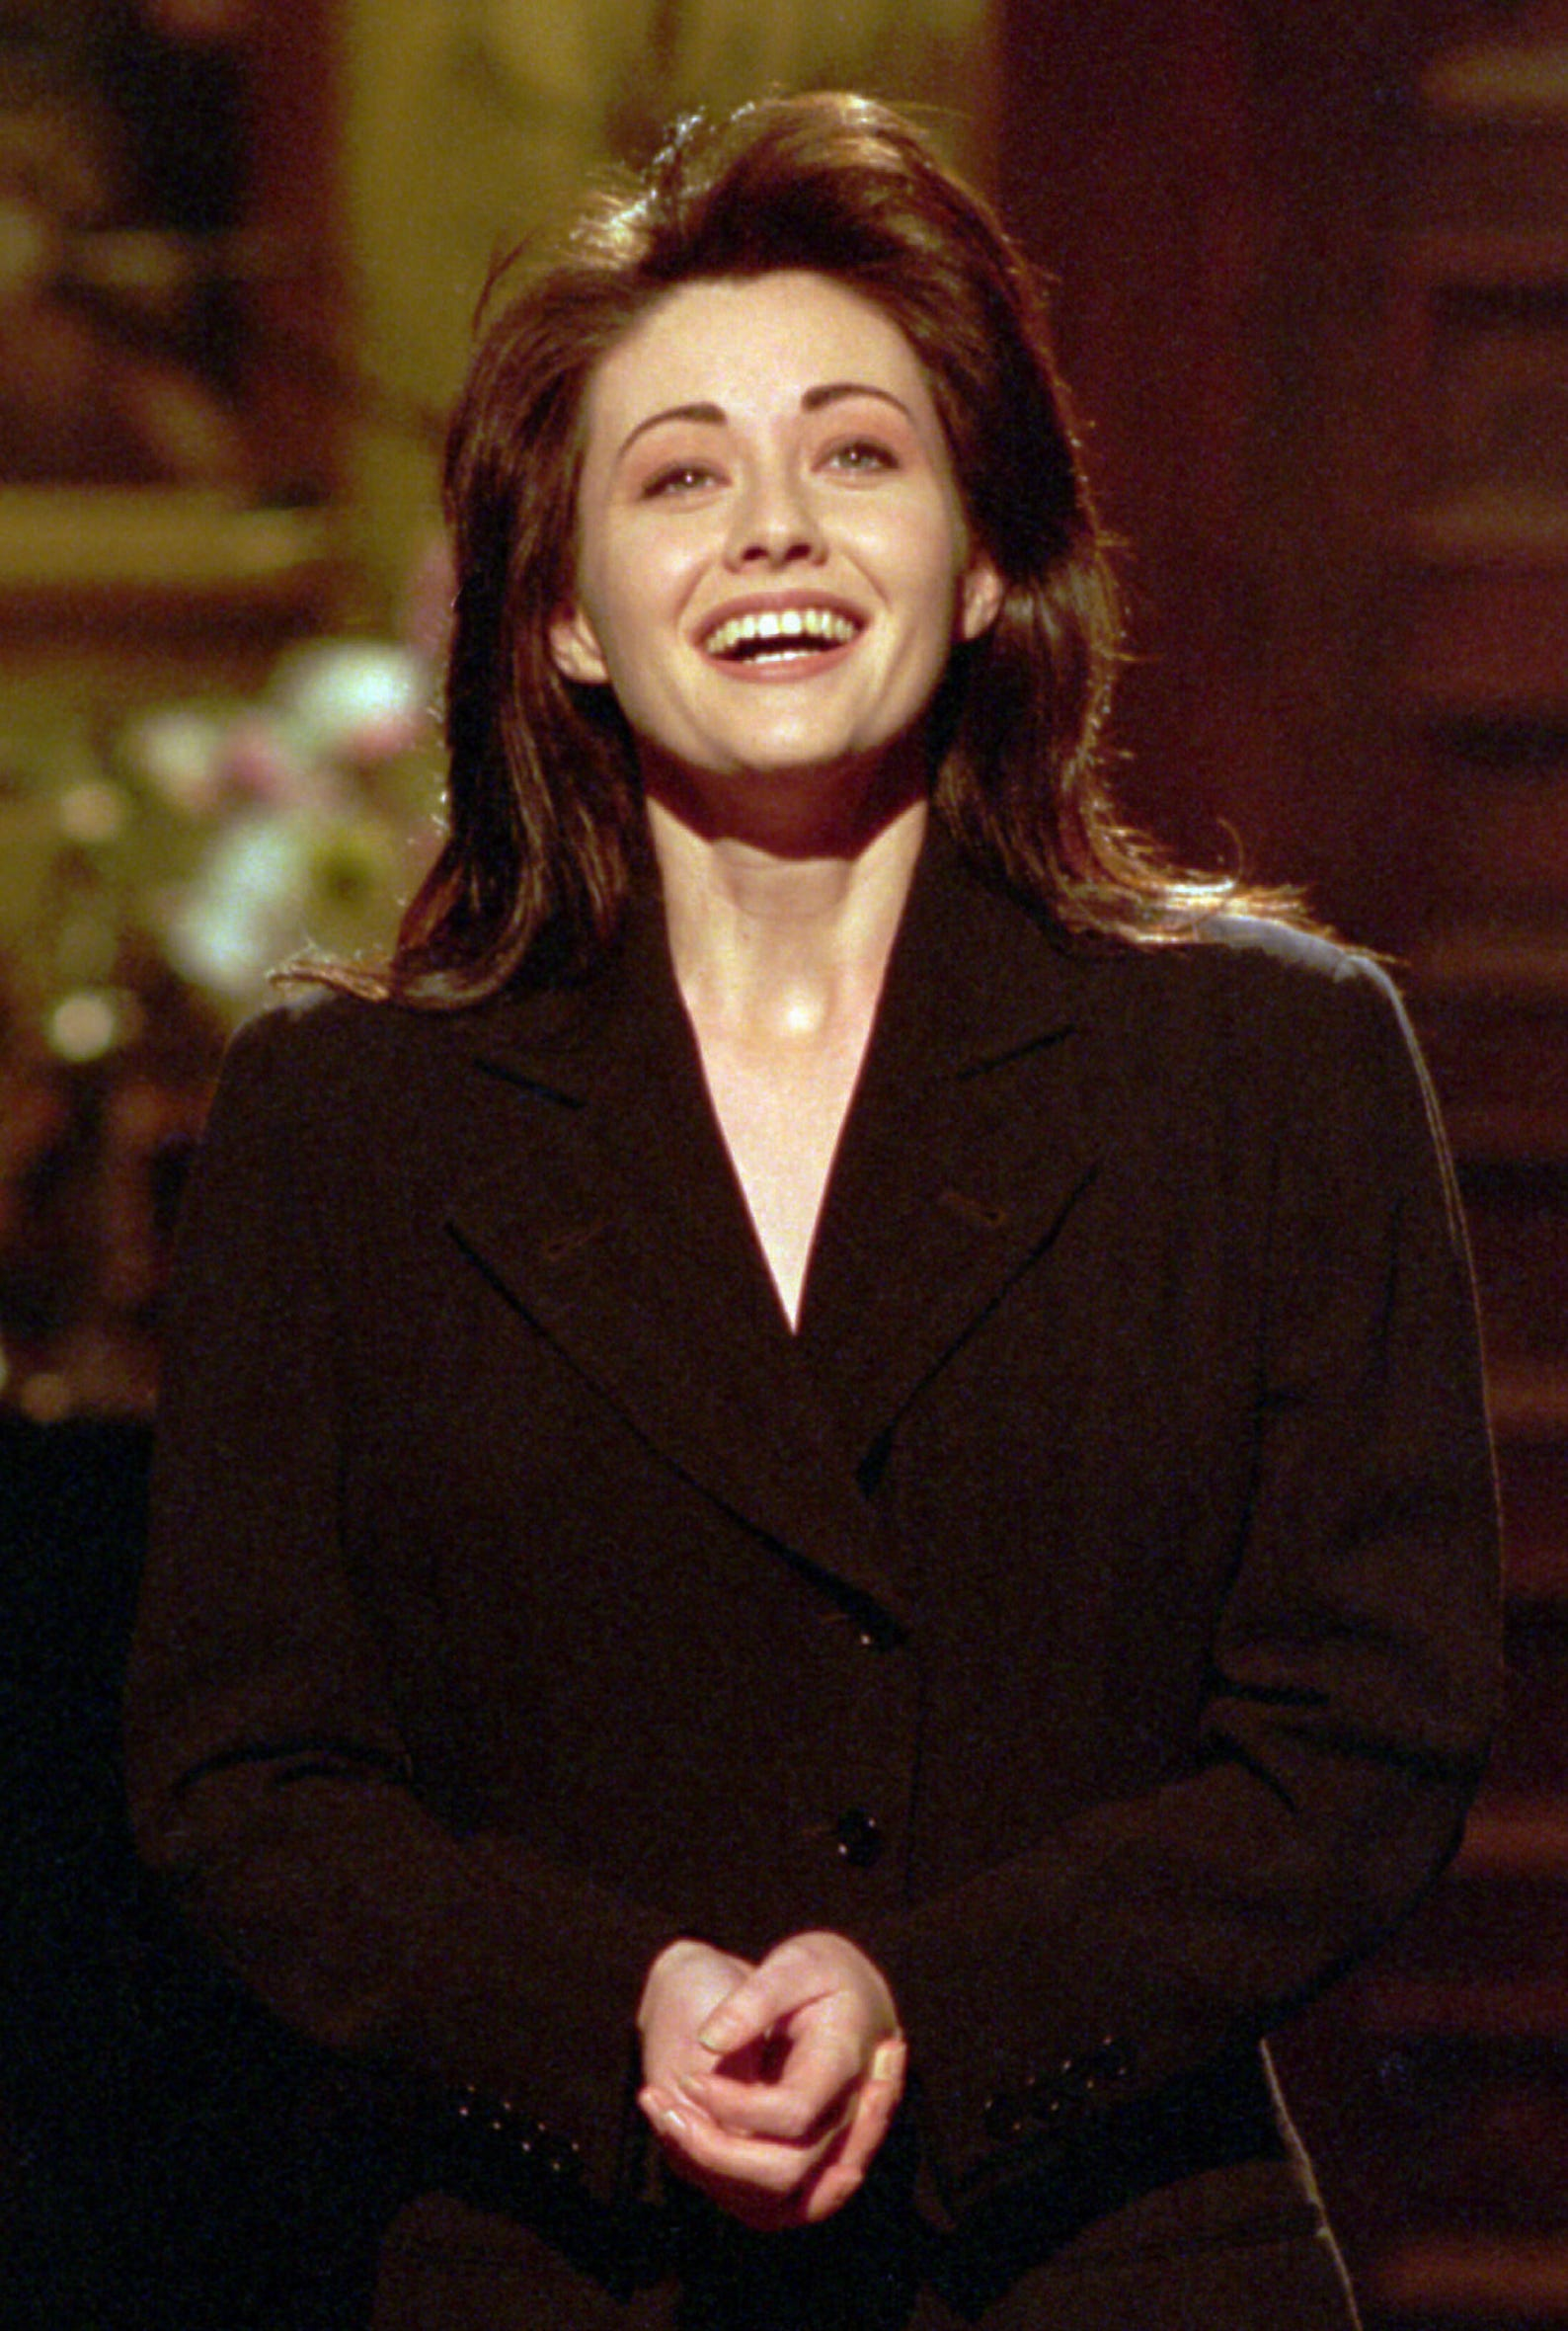 Shannen Doherty See Through photo 25